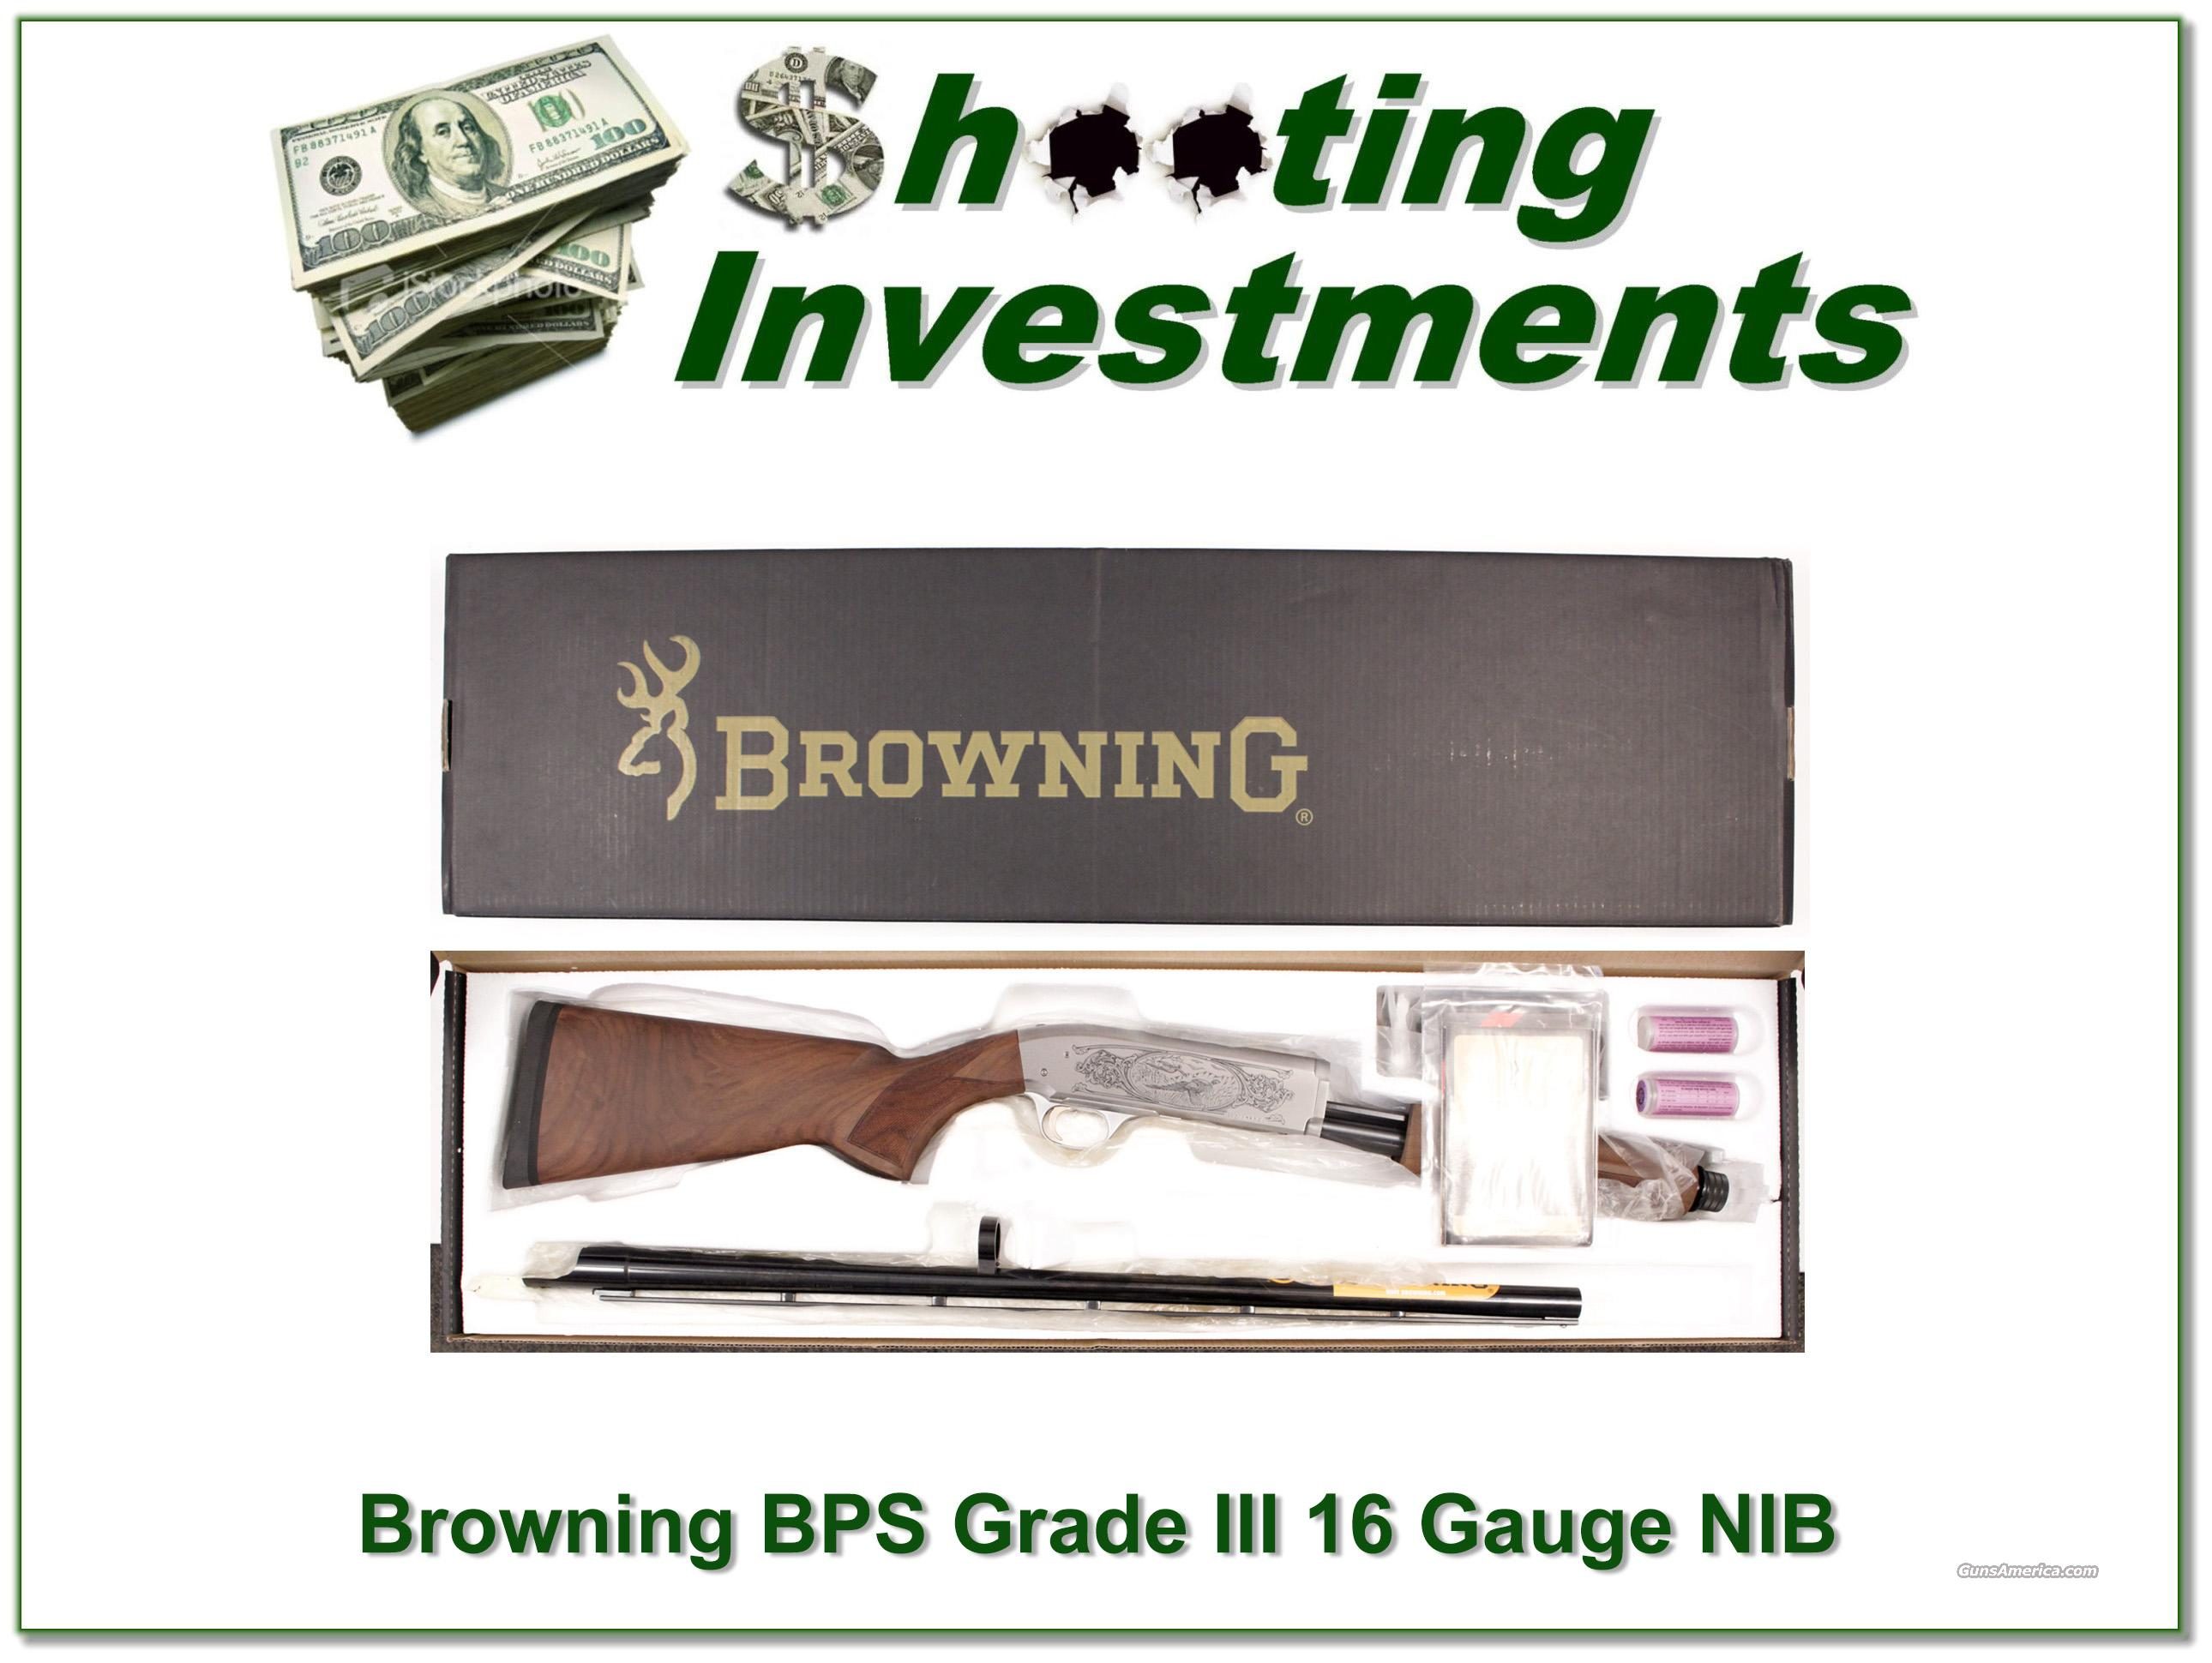 Browning BPS Grade III no longer made 16 gauge NIB  Guns > Shotguns > Browning Shotguns > Pump Action > Hunting